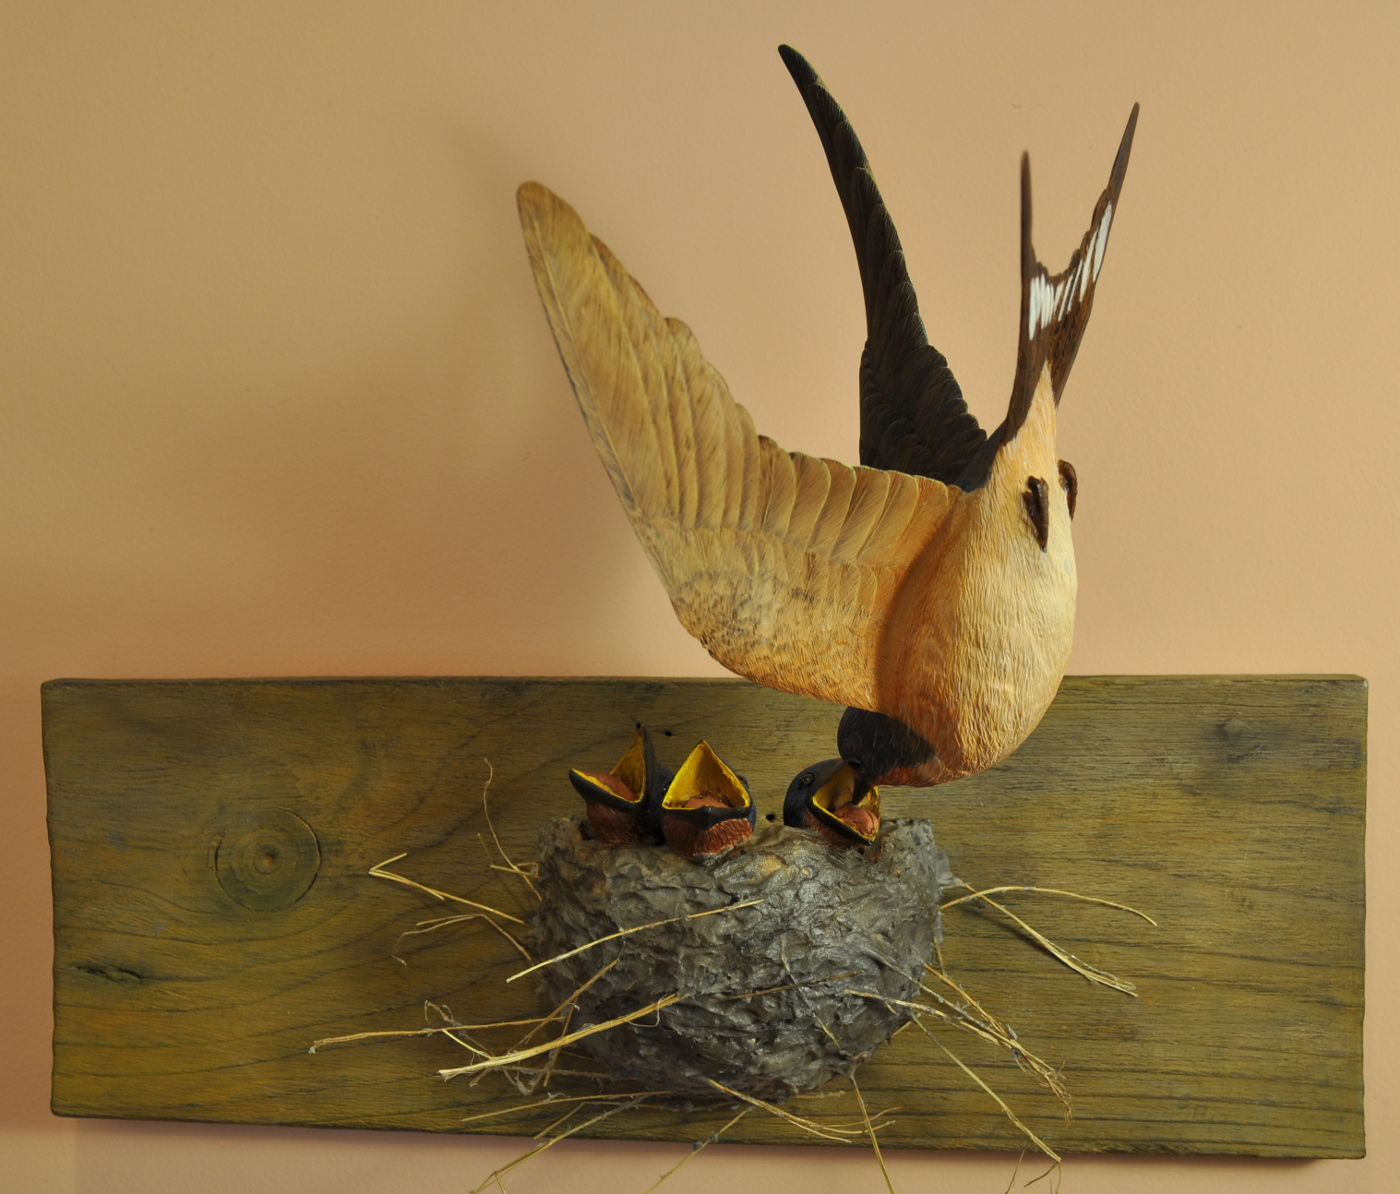 Barn swallow birds in wood